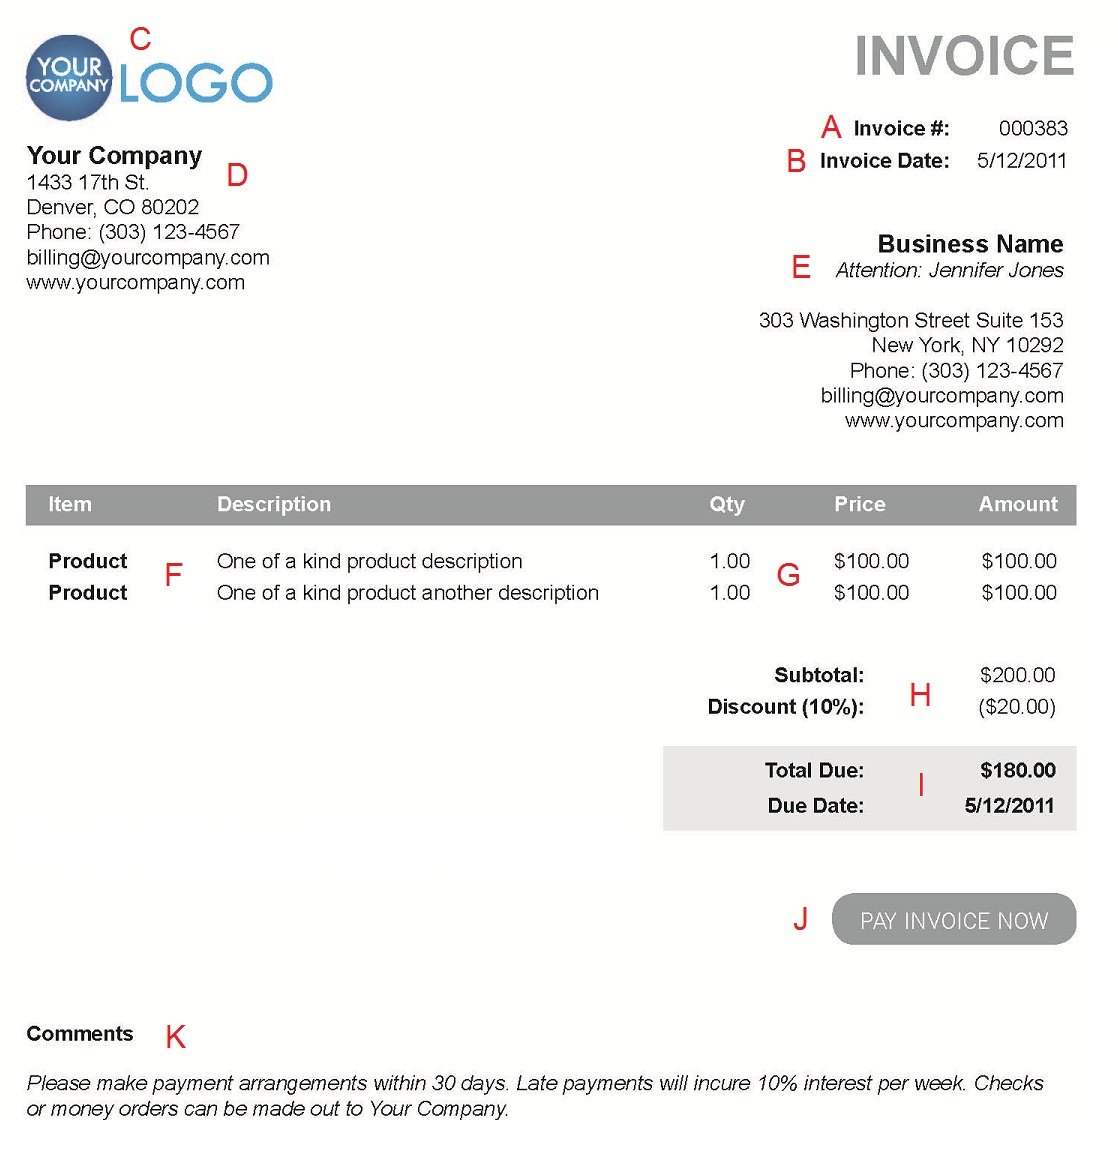 Coachoutletonlineplusus  Stunning The  Different Sections Of An Electronic Payment Invoice With Fascinating A  With Cool How To Invoice Paypal Also Generate Invoices In Addition Invoice With Square And Invoice Line Item As Well As Invoice Designer Additionally Freeagent Invoice From Paysimplecom With Coachoutletonlineplusus  Fascinating The  Different Sections Of An Electronic Payment Invoice With Cool A  And Stunning How To Invoice Paypal Also Generate Invoices In Addition Invoice With Square From Paysimplecom